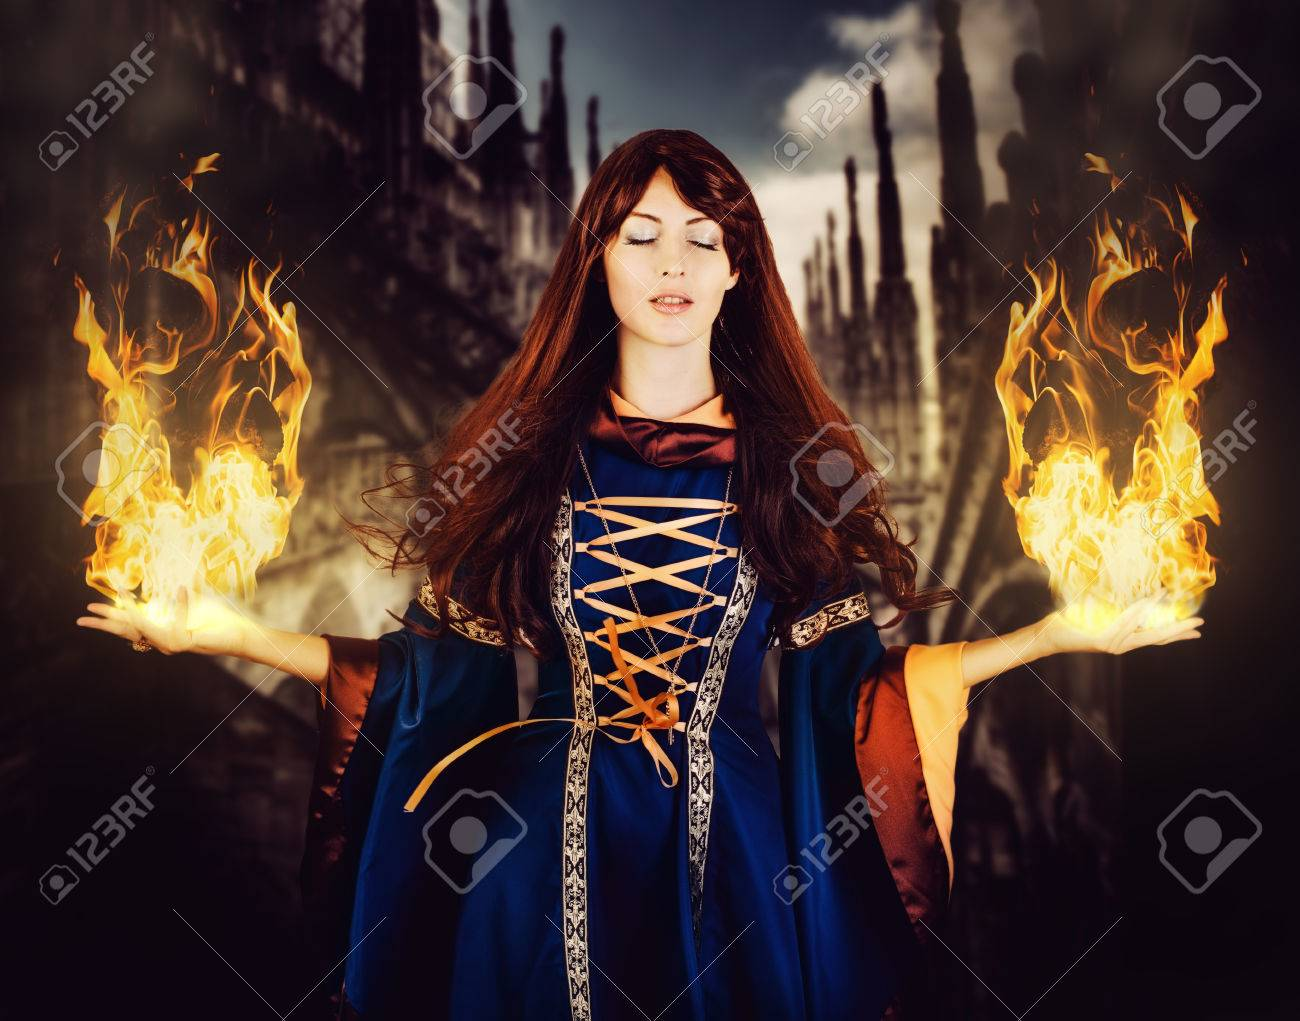 Beautiful Woman Witch In Fantasy Medieval Dress And Long Hair ... for Girl With Fire In Hands  56mzq